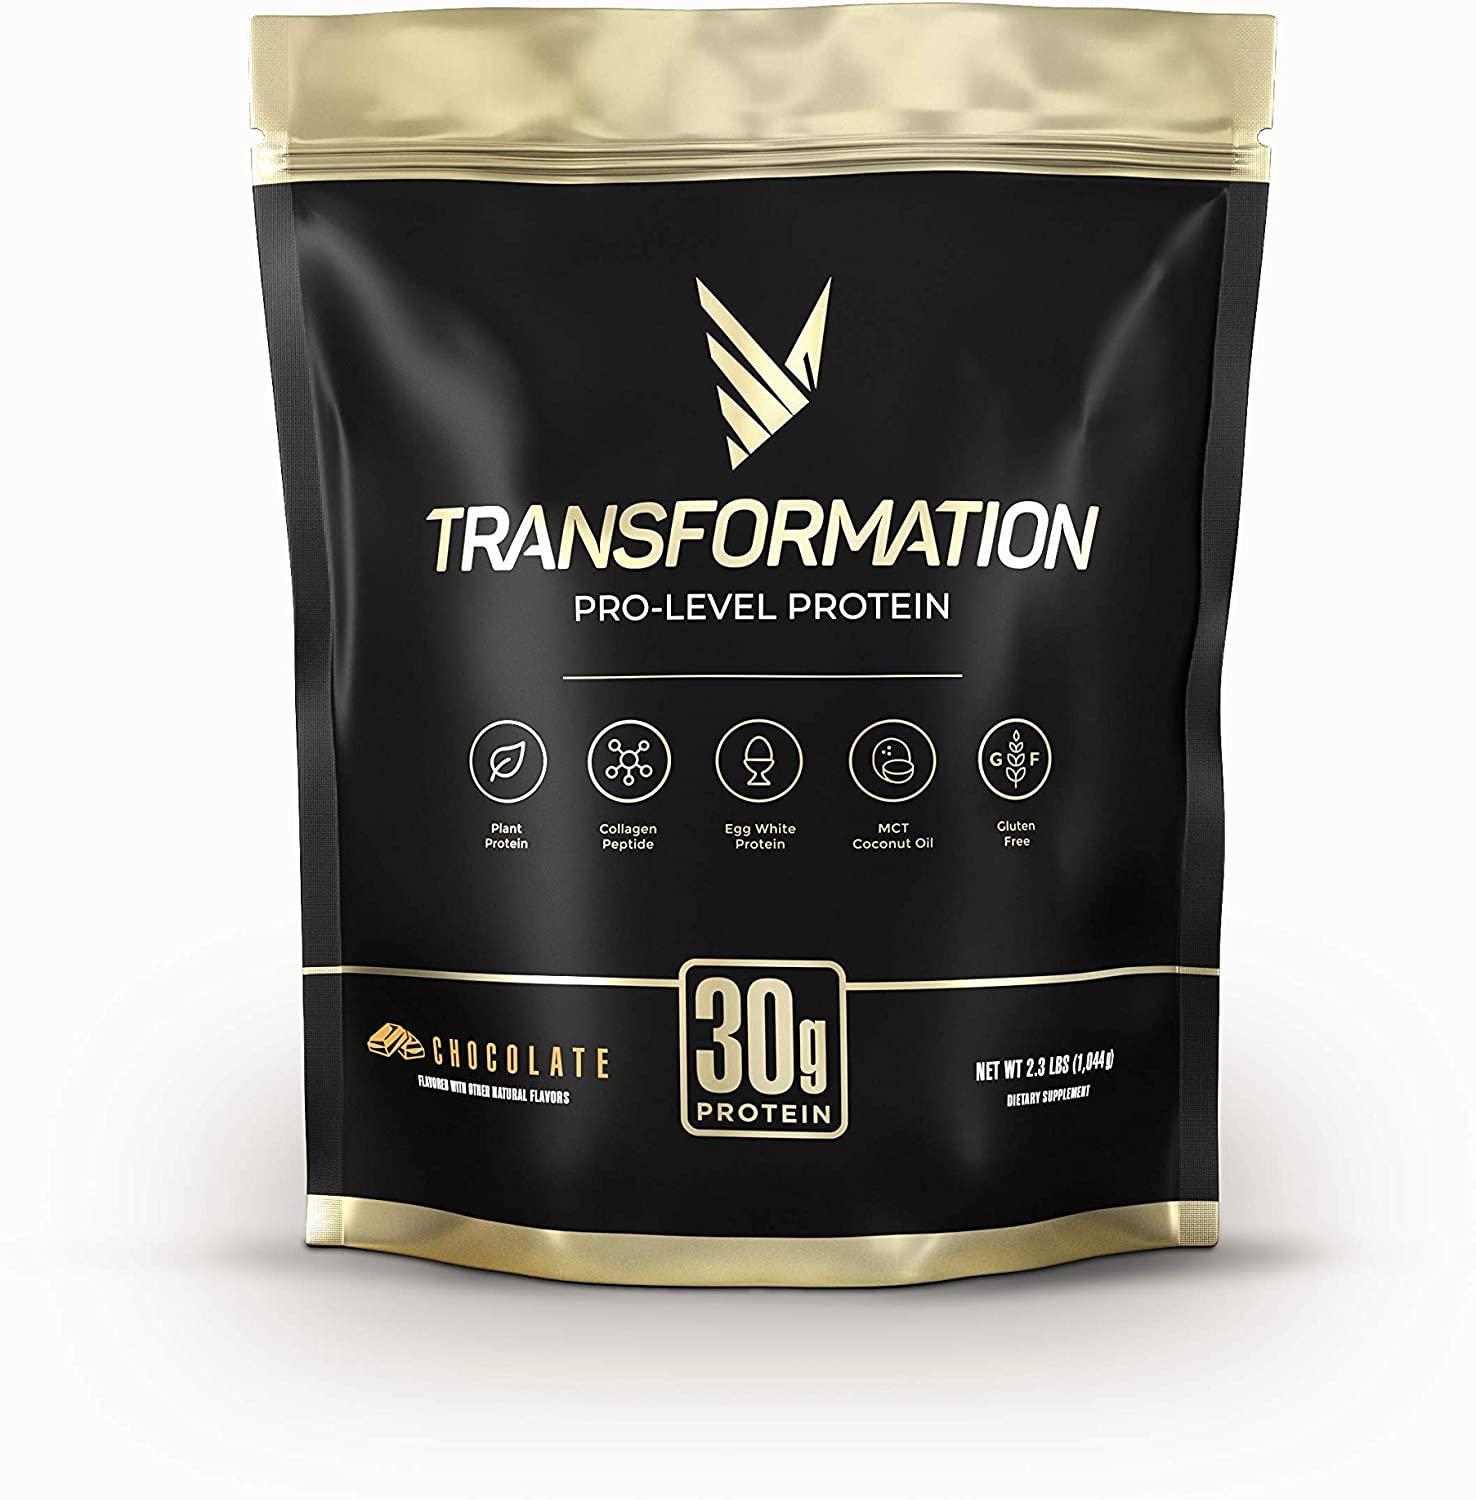 Transformation Chocolate Protein Powder | 30G Multi-Protein Superblend | Collagen Peptides, Egg White & Plant Blend | MCT Oil | BCAA Amino Acids | Probiotics & Enzymes | Low Carb Shake for Men & Women